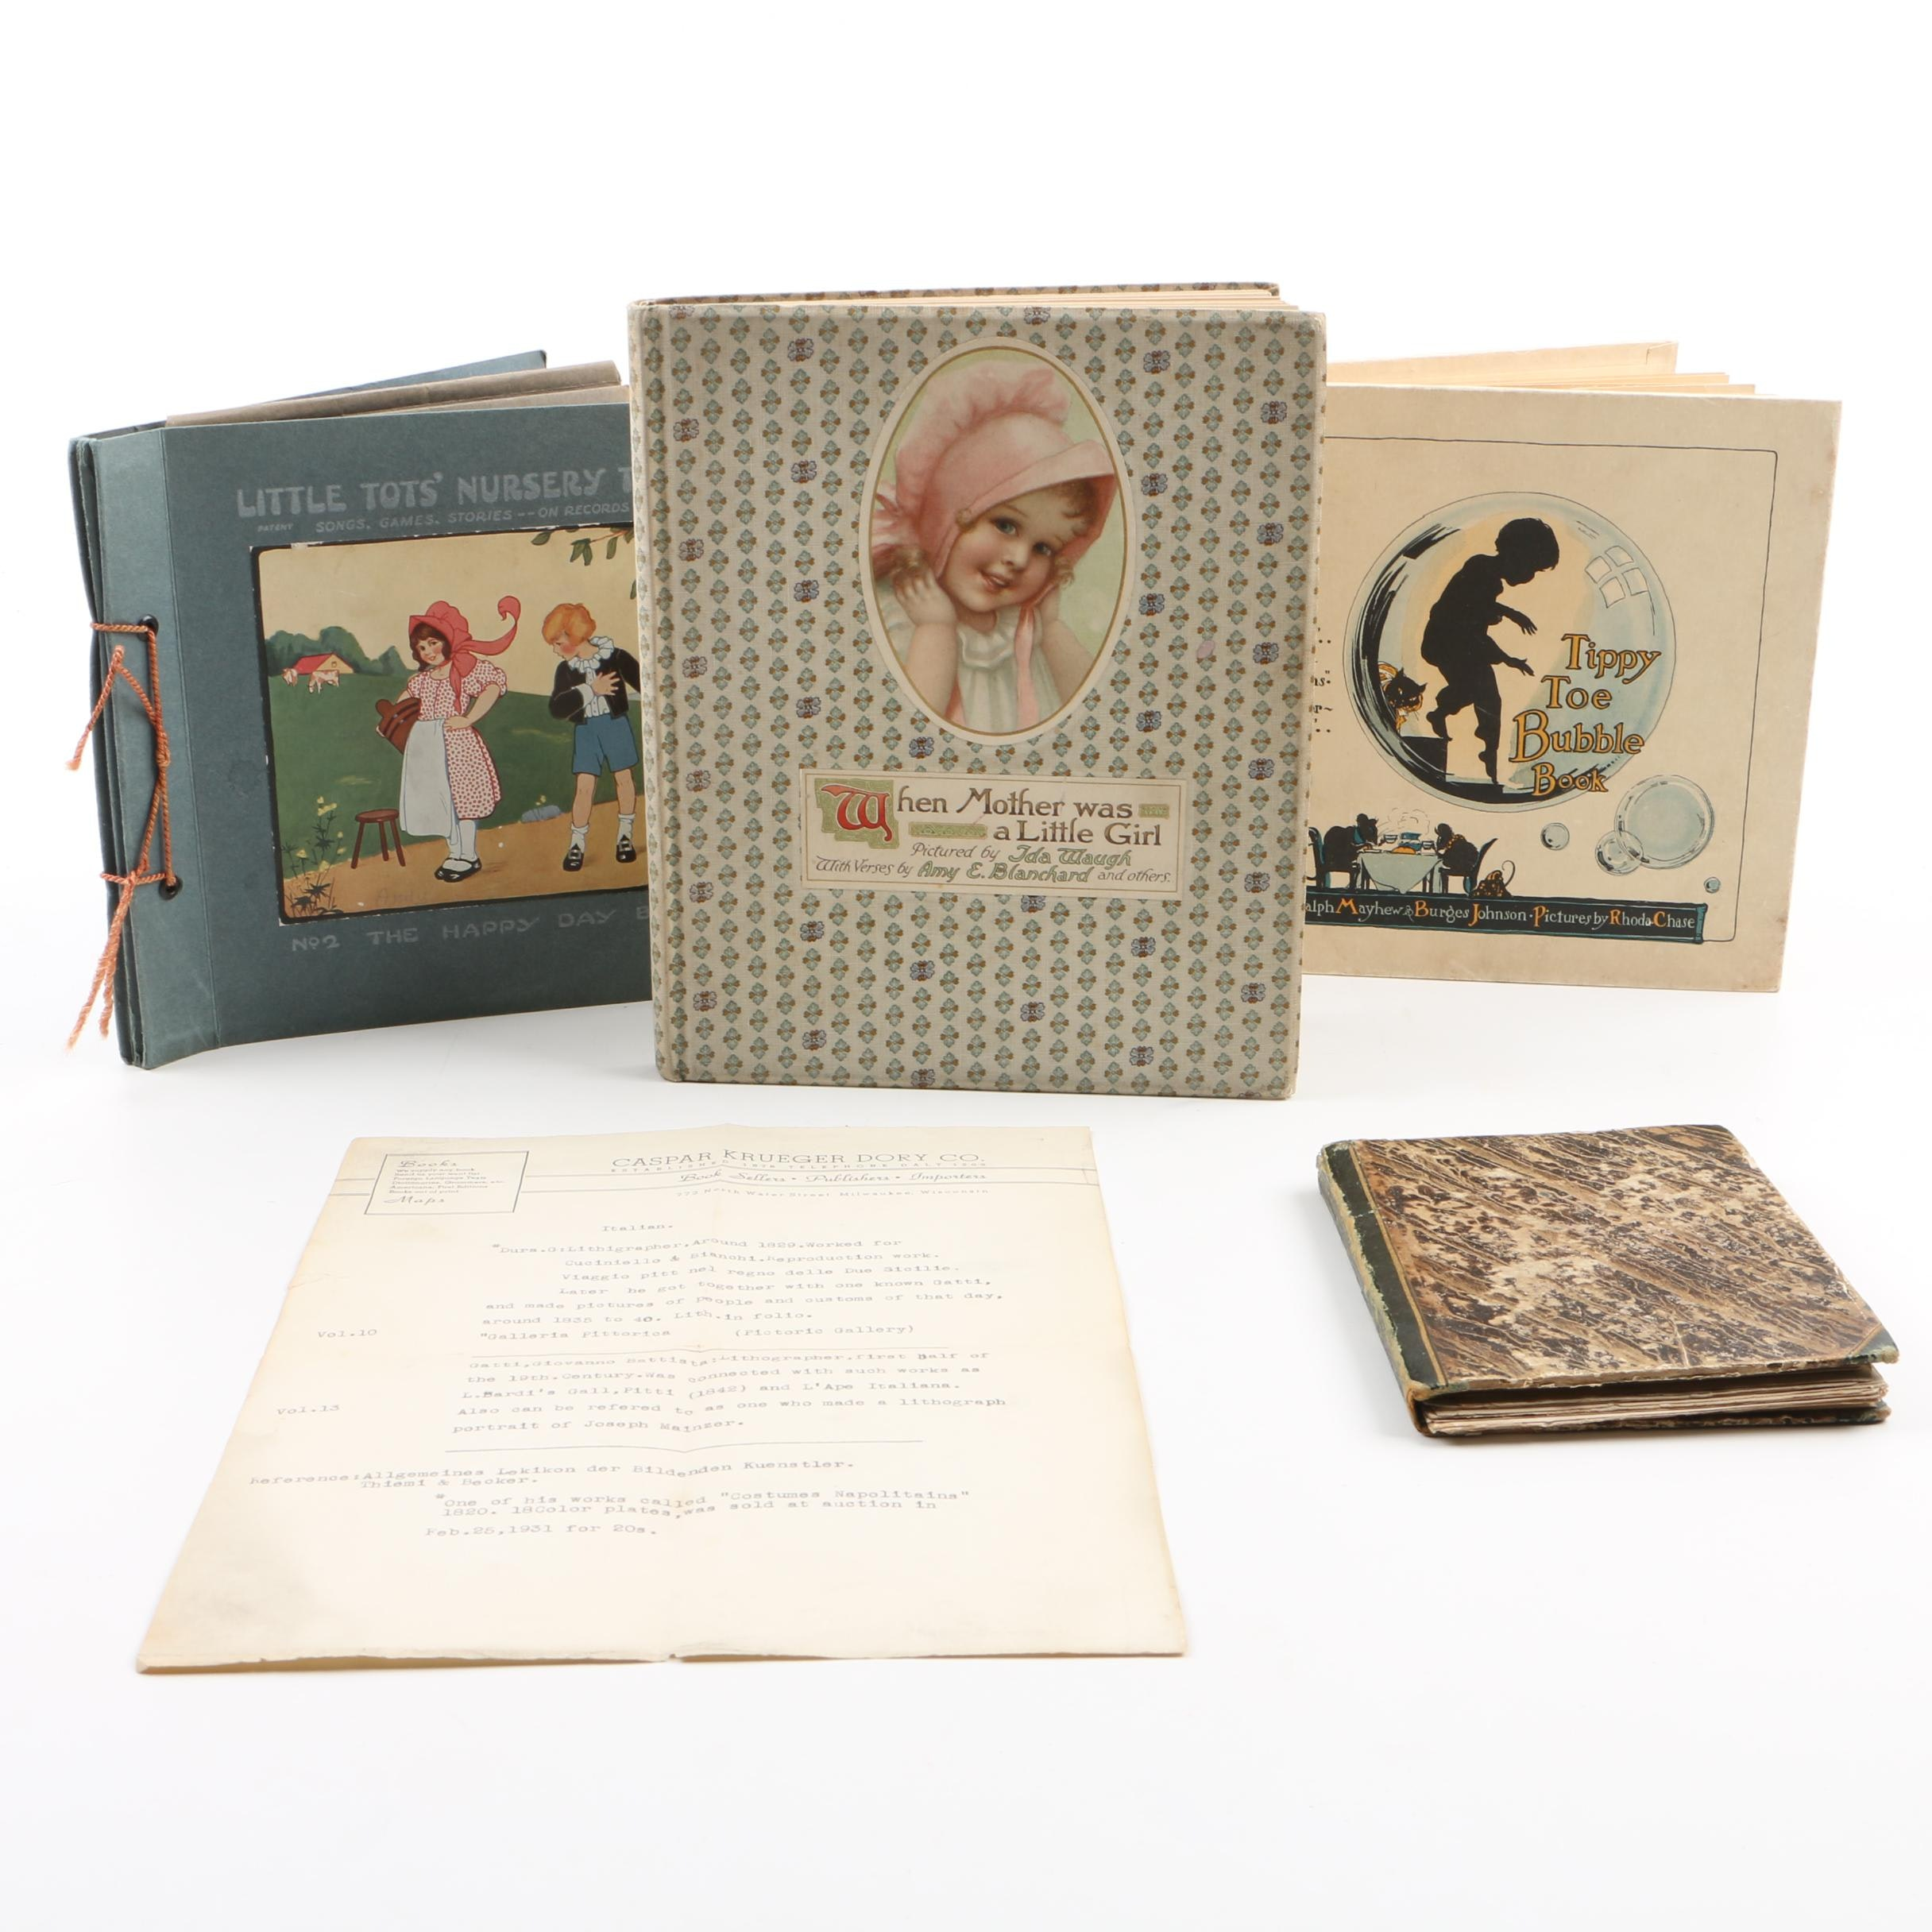 Three Early 20th Century Children's Books and Records